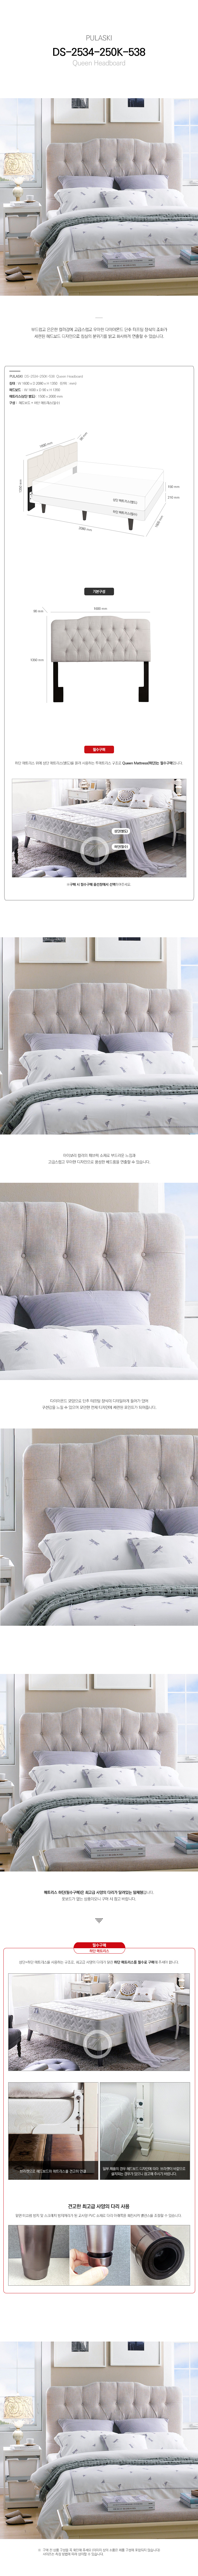 1_1_DS-2534-250K-538_Queen_Headboard.jpg